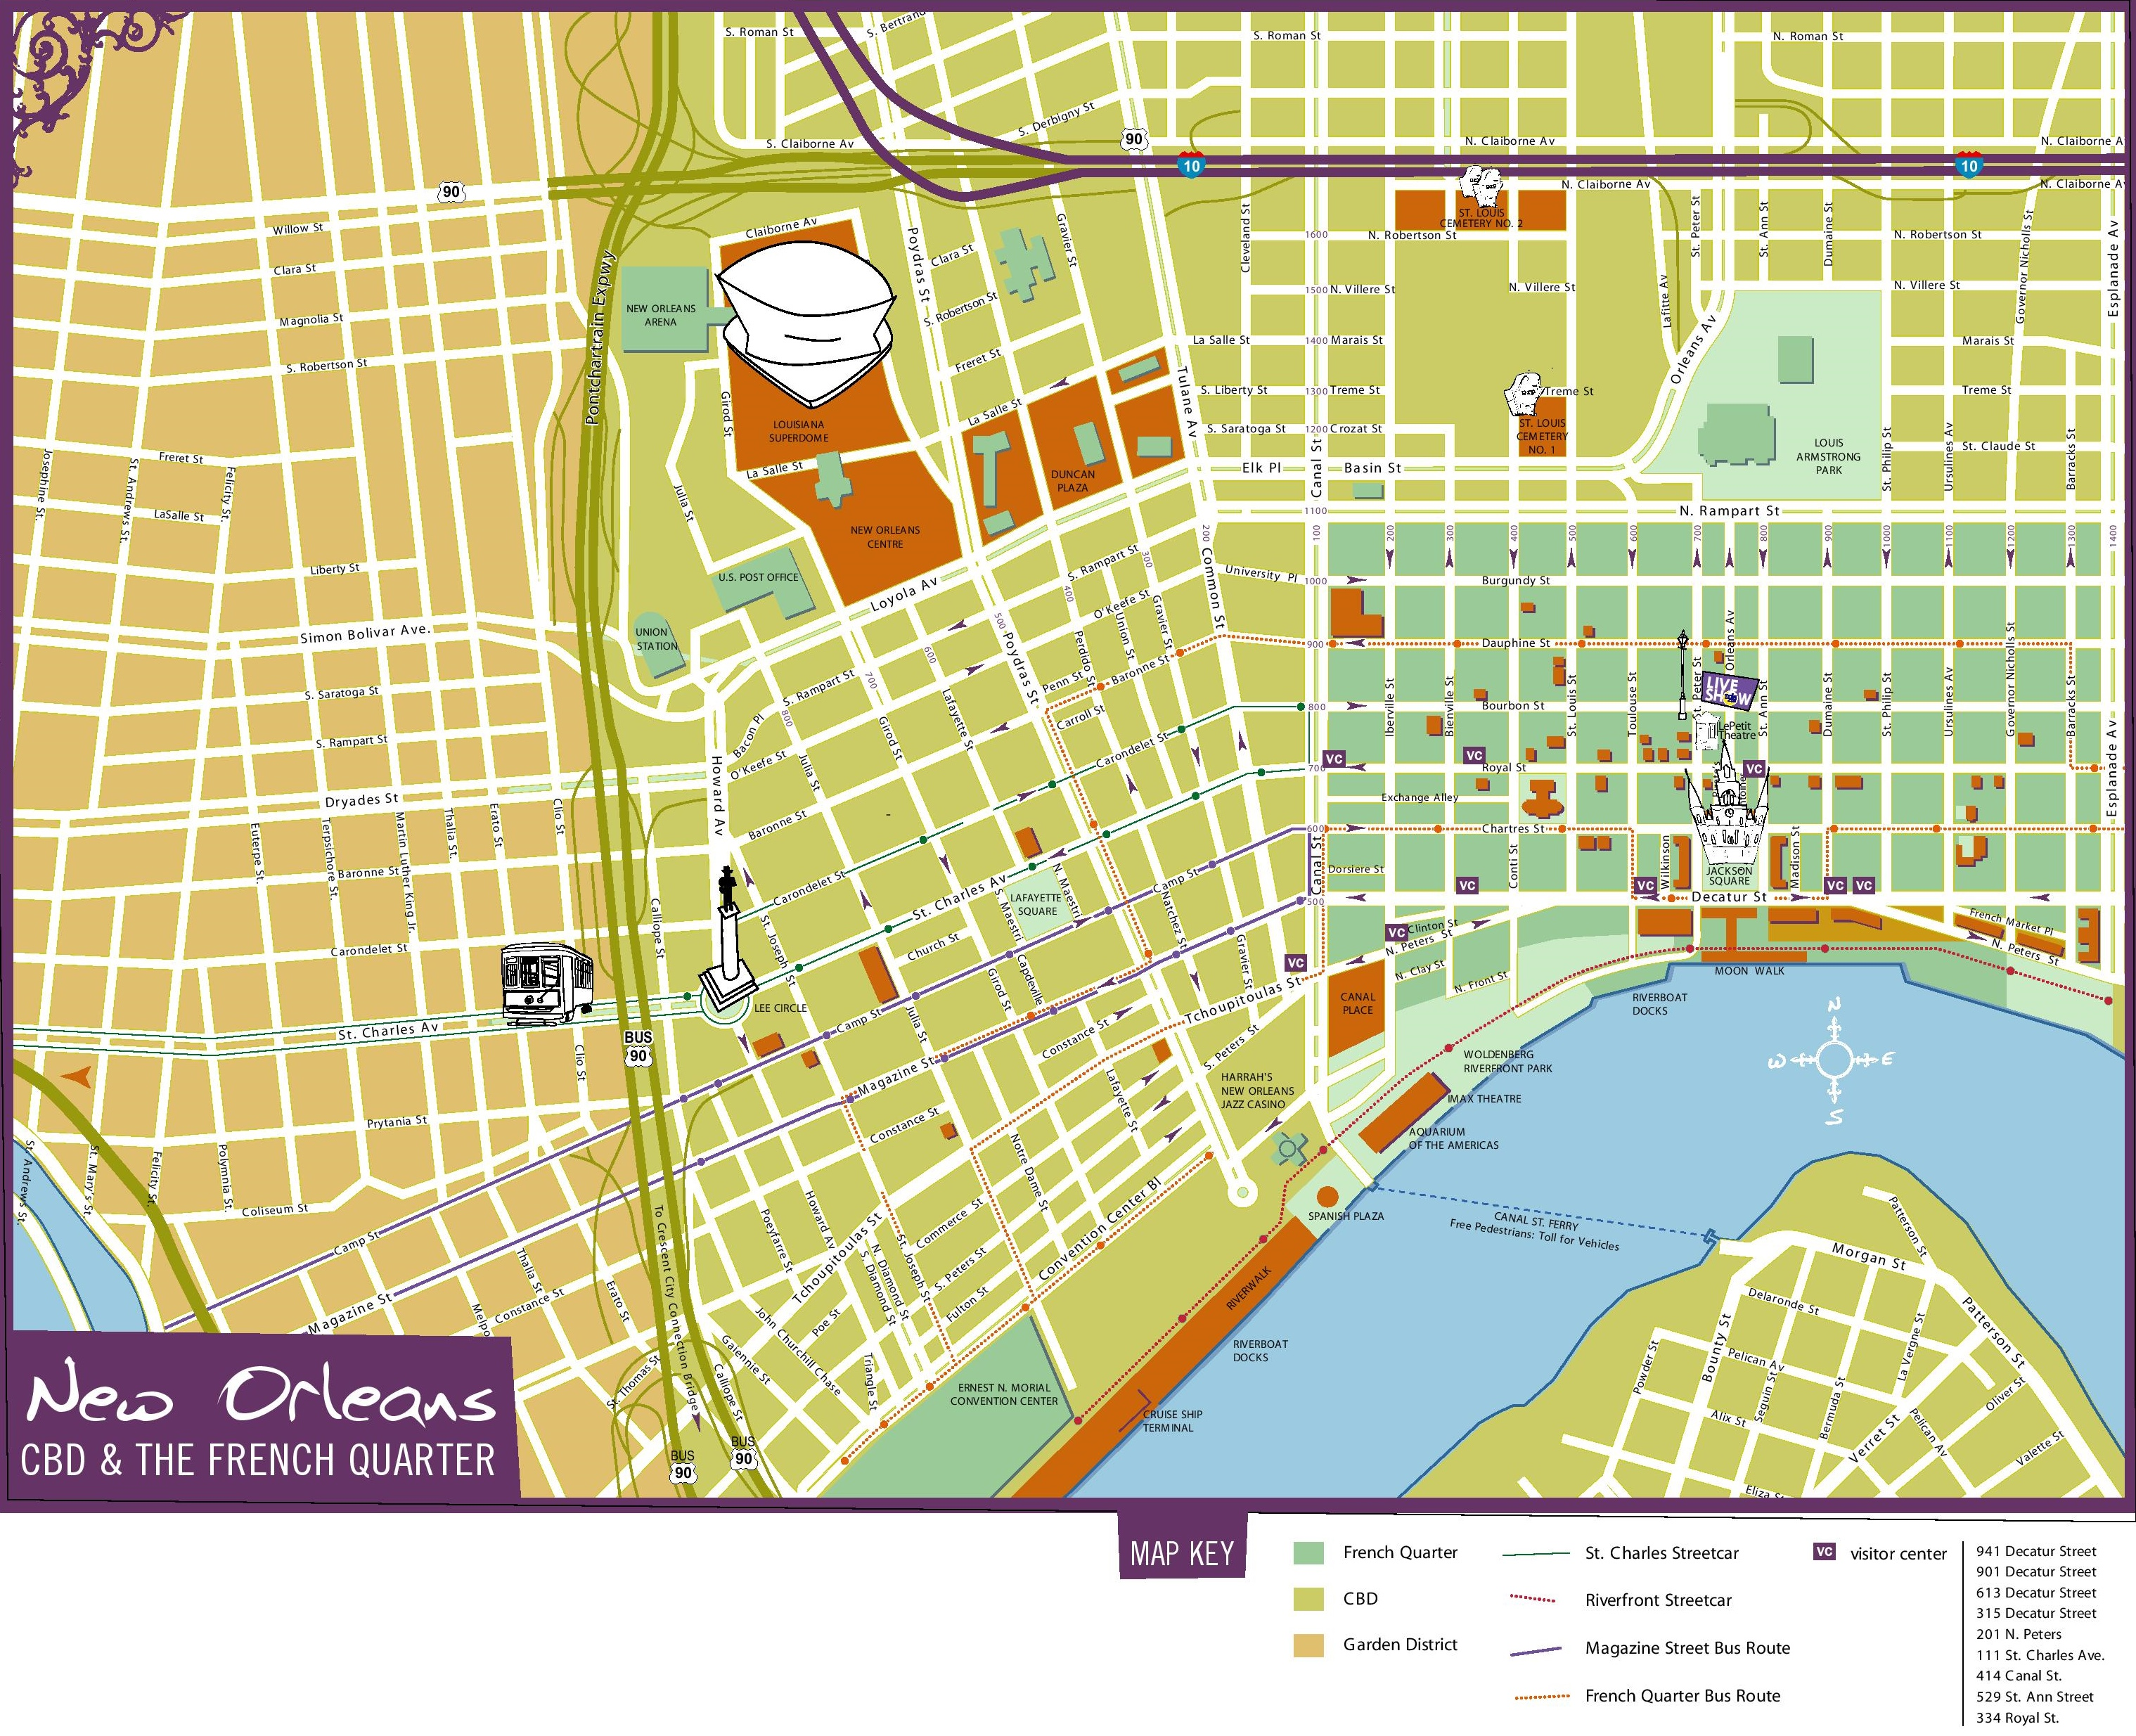 New Orleans Maps Louisiana US – New Orleans French Quarter Tourist Map